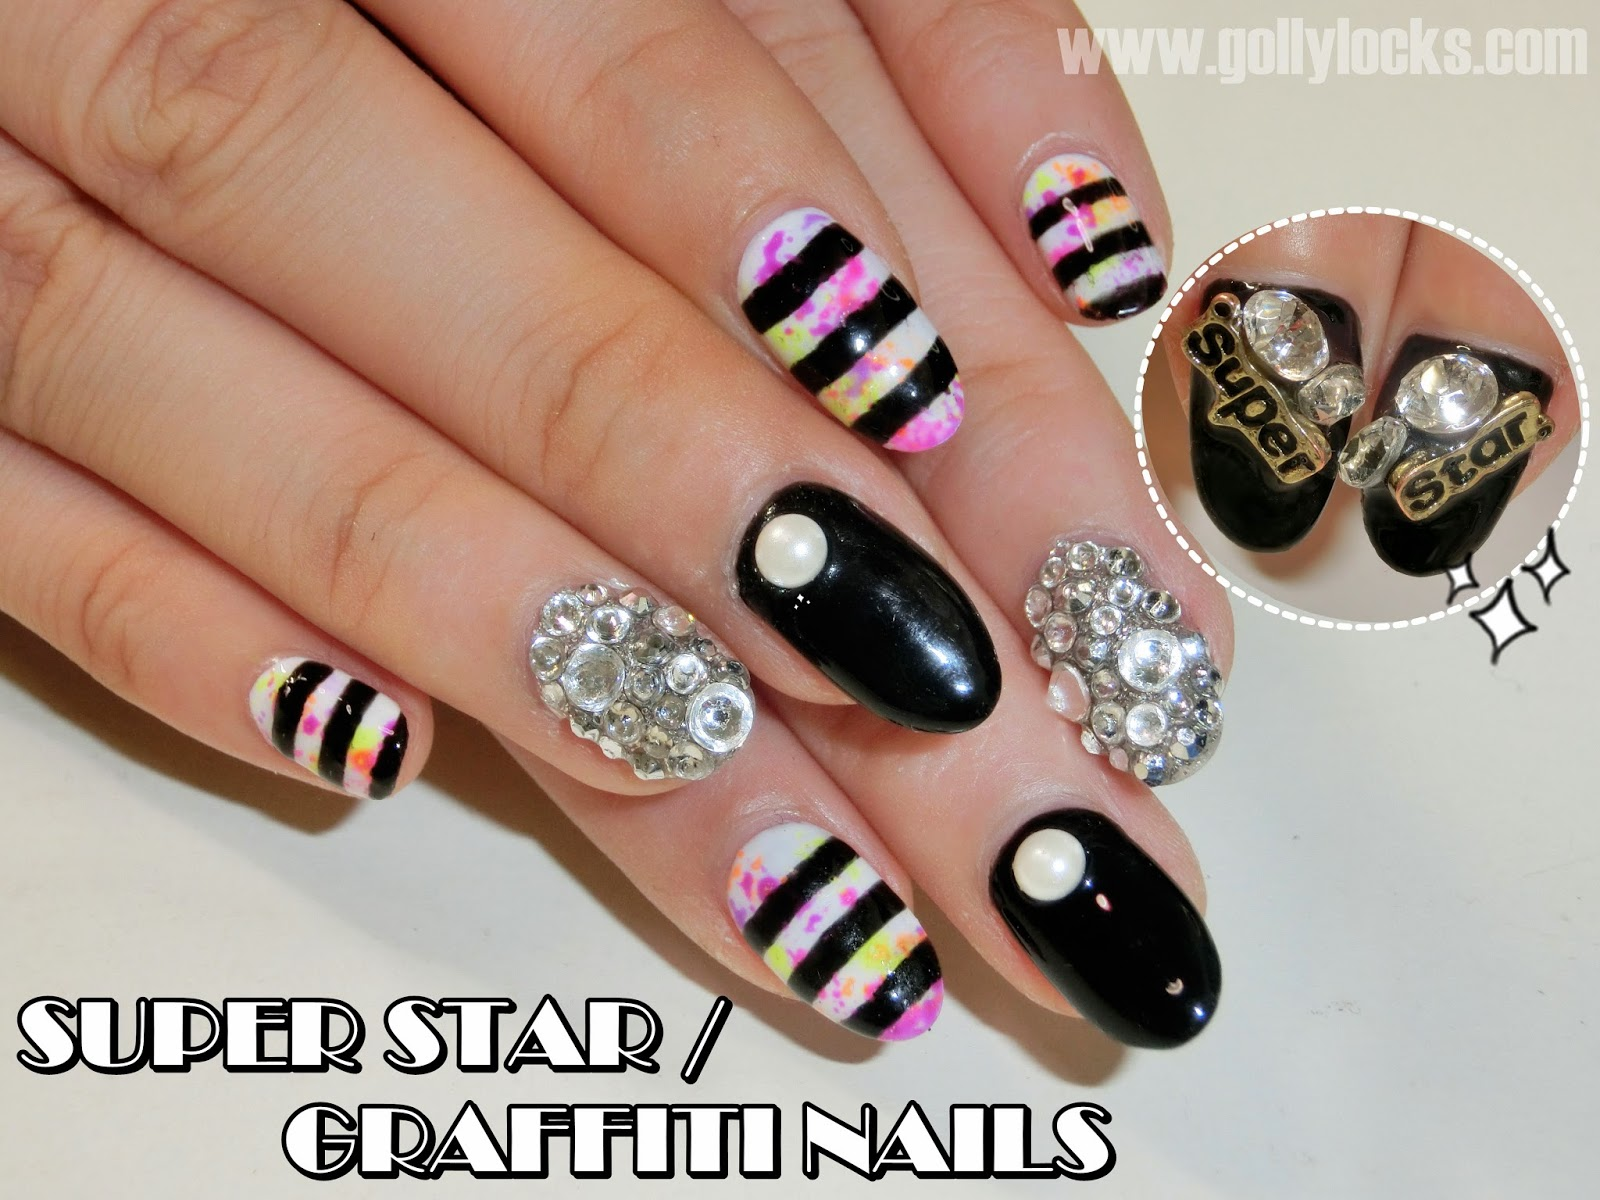 gollylocks-superstar-graffiti-nail